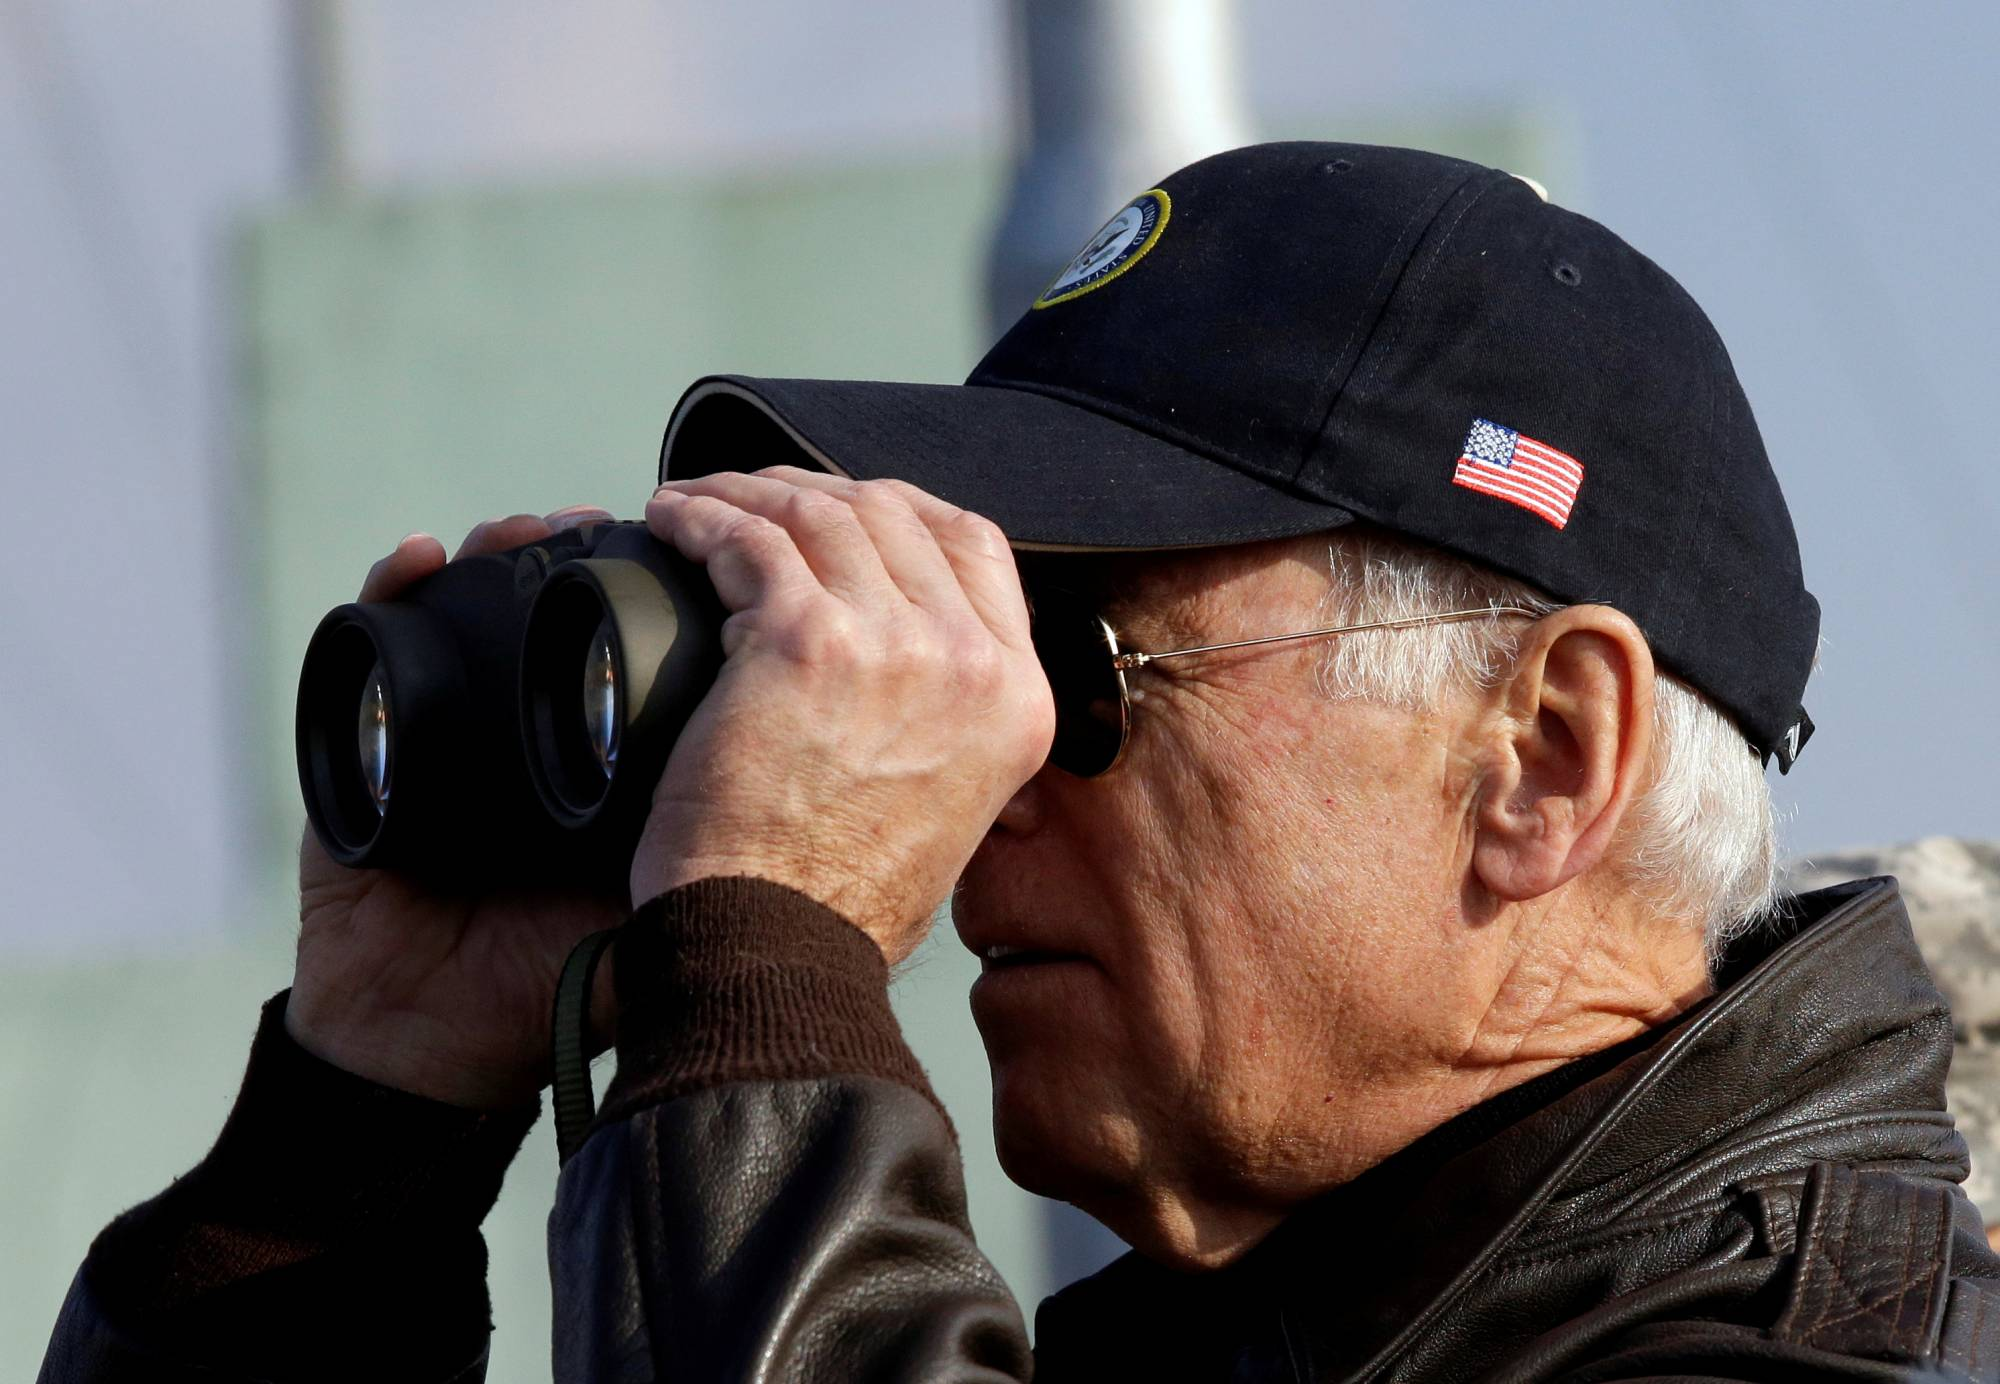 Joe Biden, U.S. vice president at the time, looks through binoculars toward North Korea from Observation Post Ouellette during a tour of the Demilitarized Zone, the military border separating the two Koreas, in Panmunjom, South Korea, in December 2013.    REUTERS